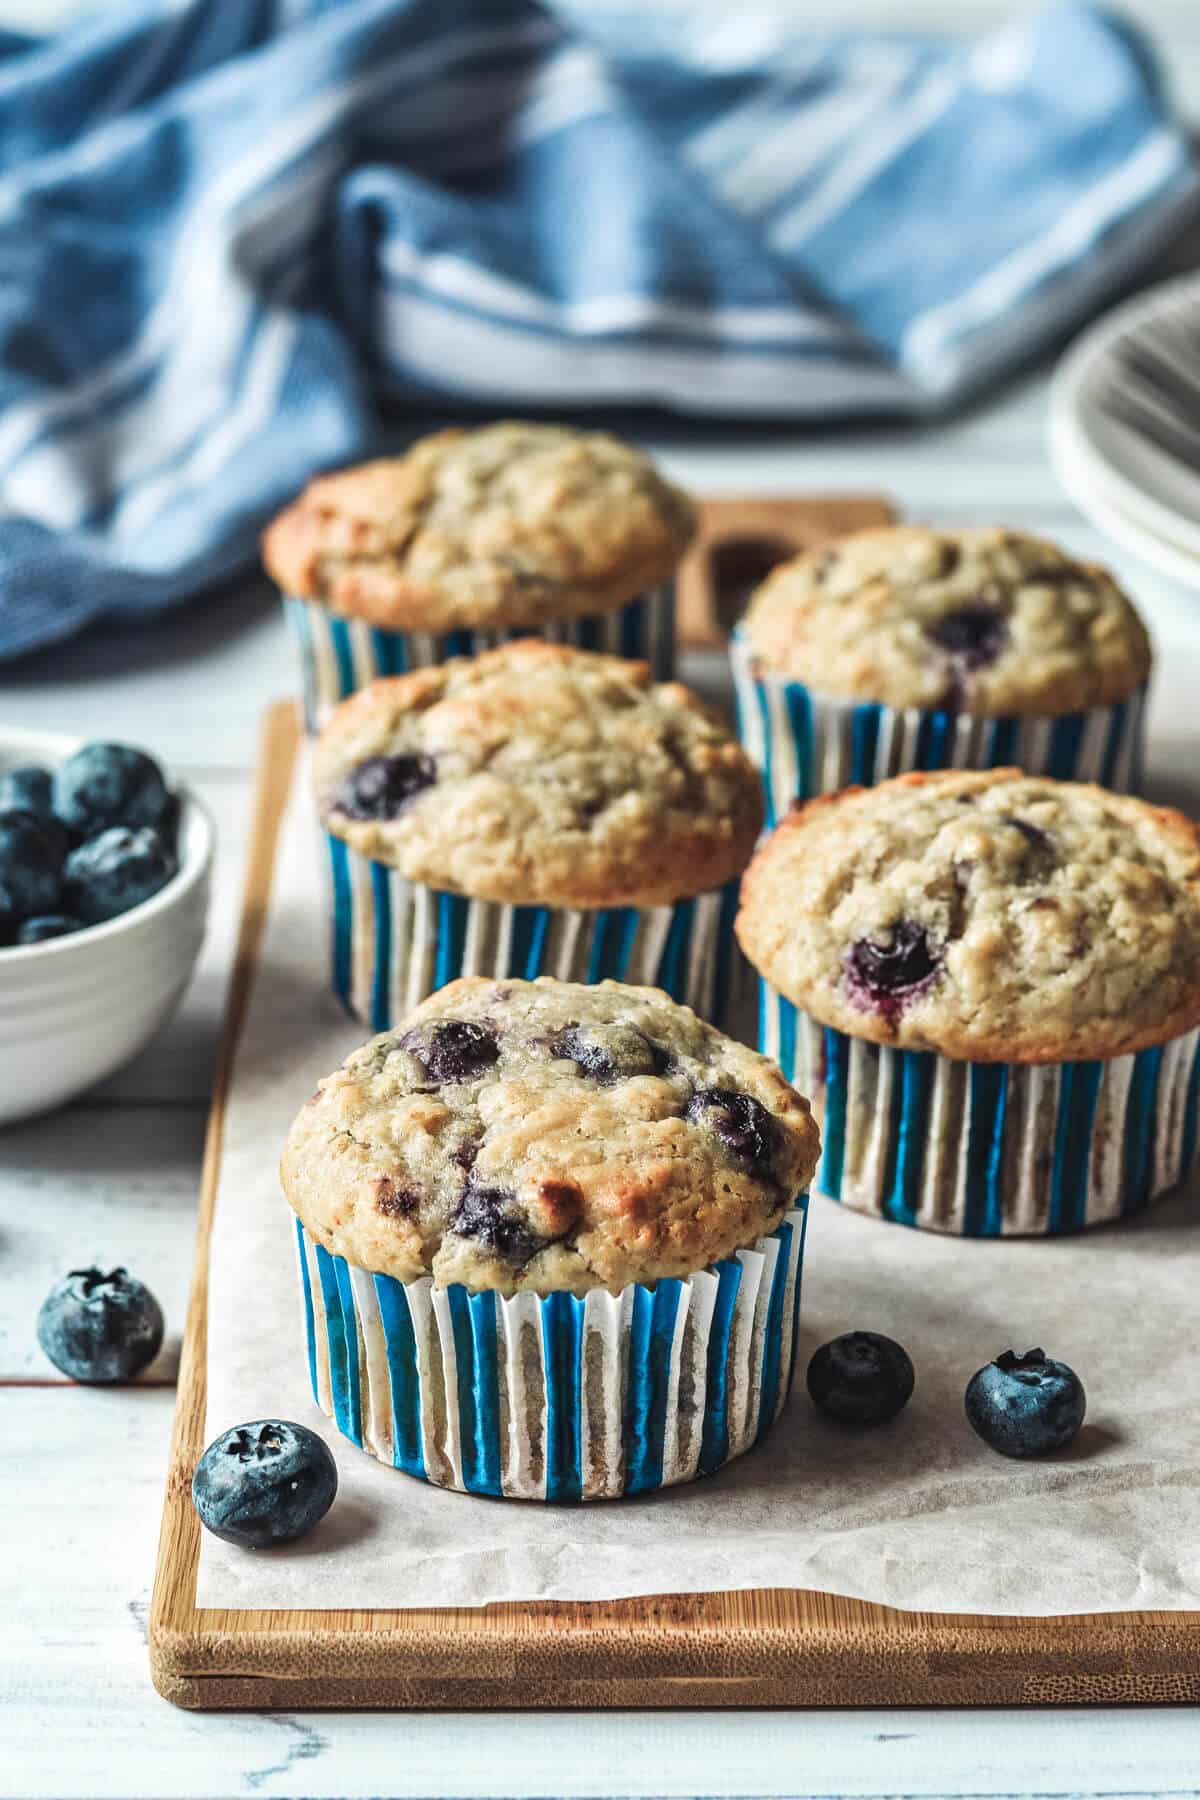 cupcakes arranged on a wooden board with blueberries